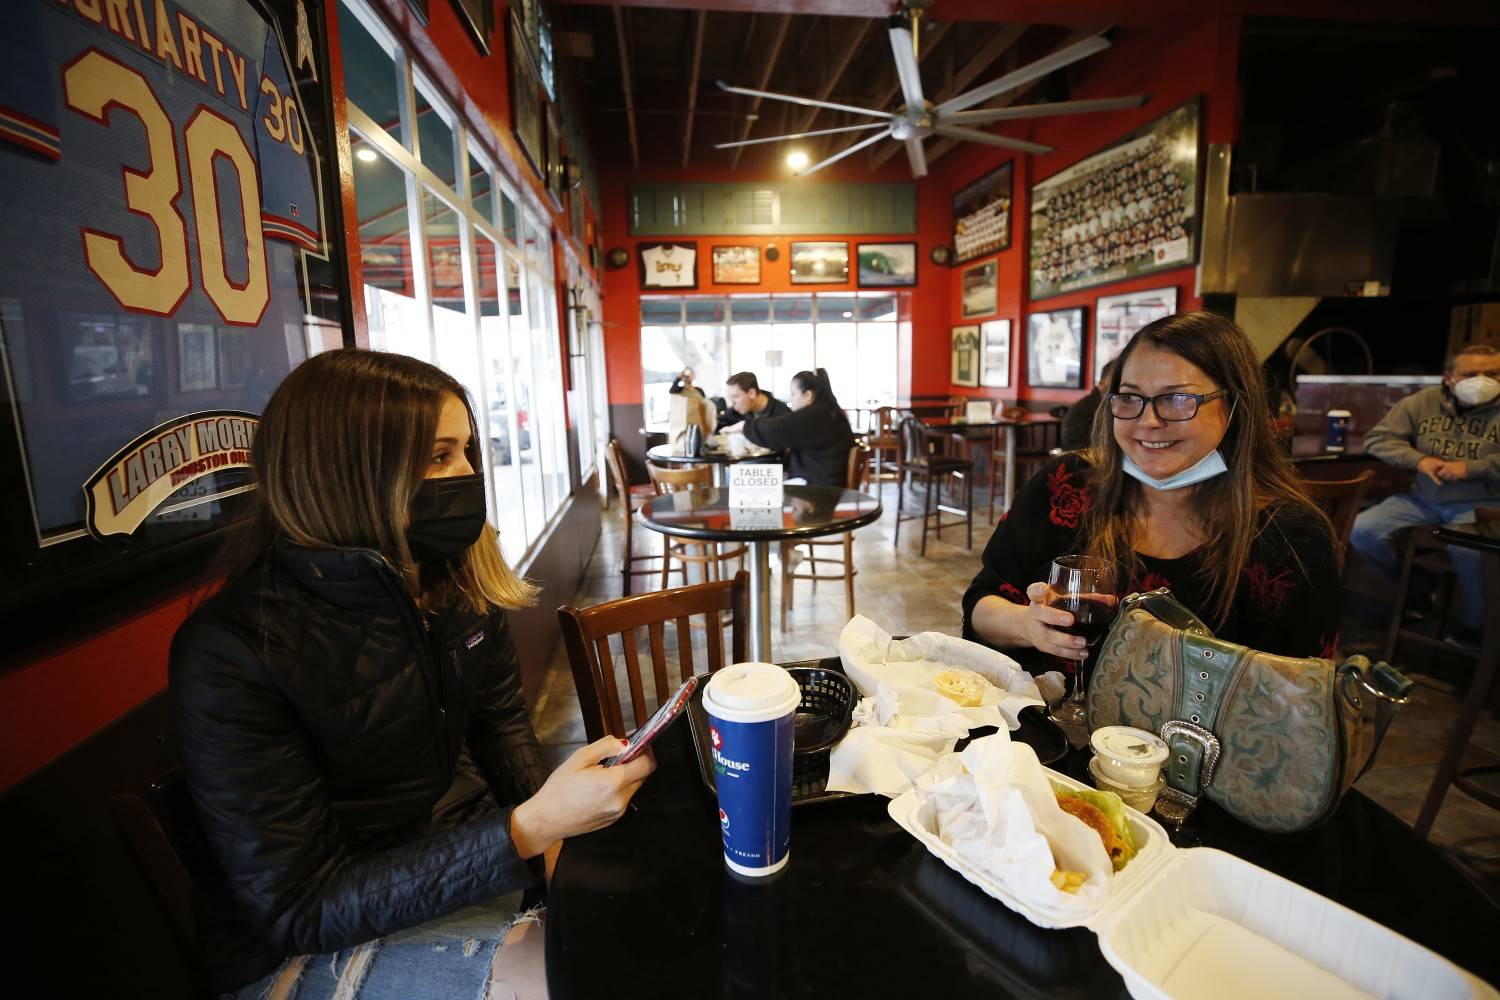 Brandi Harrapence, right, has lunch with her daughter Kayla Harrapence inside Firestone Grill in the heart of downtown San Luis Obispo, open for inside dinning for the first time in nearly a year, on Wednesday, March 3, 2021 in San Luis Obispo, California. (Al Seib/Los Angeles Times/TNS)